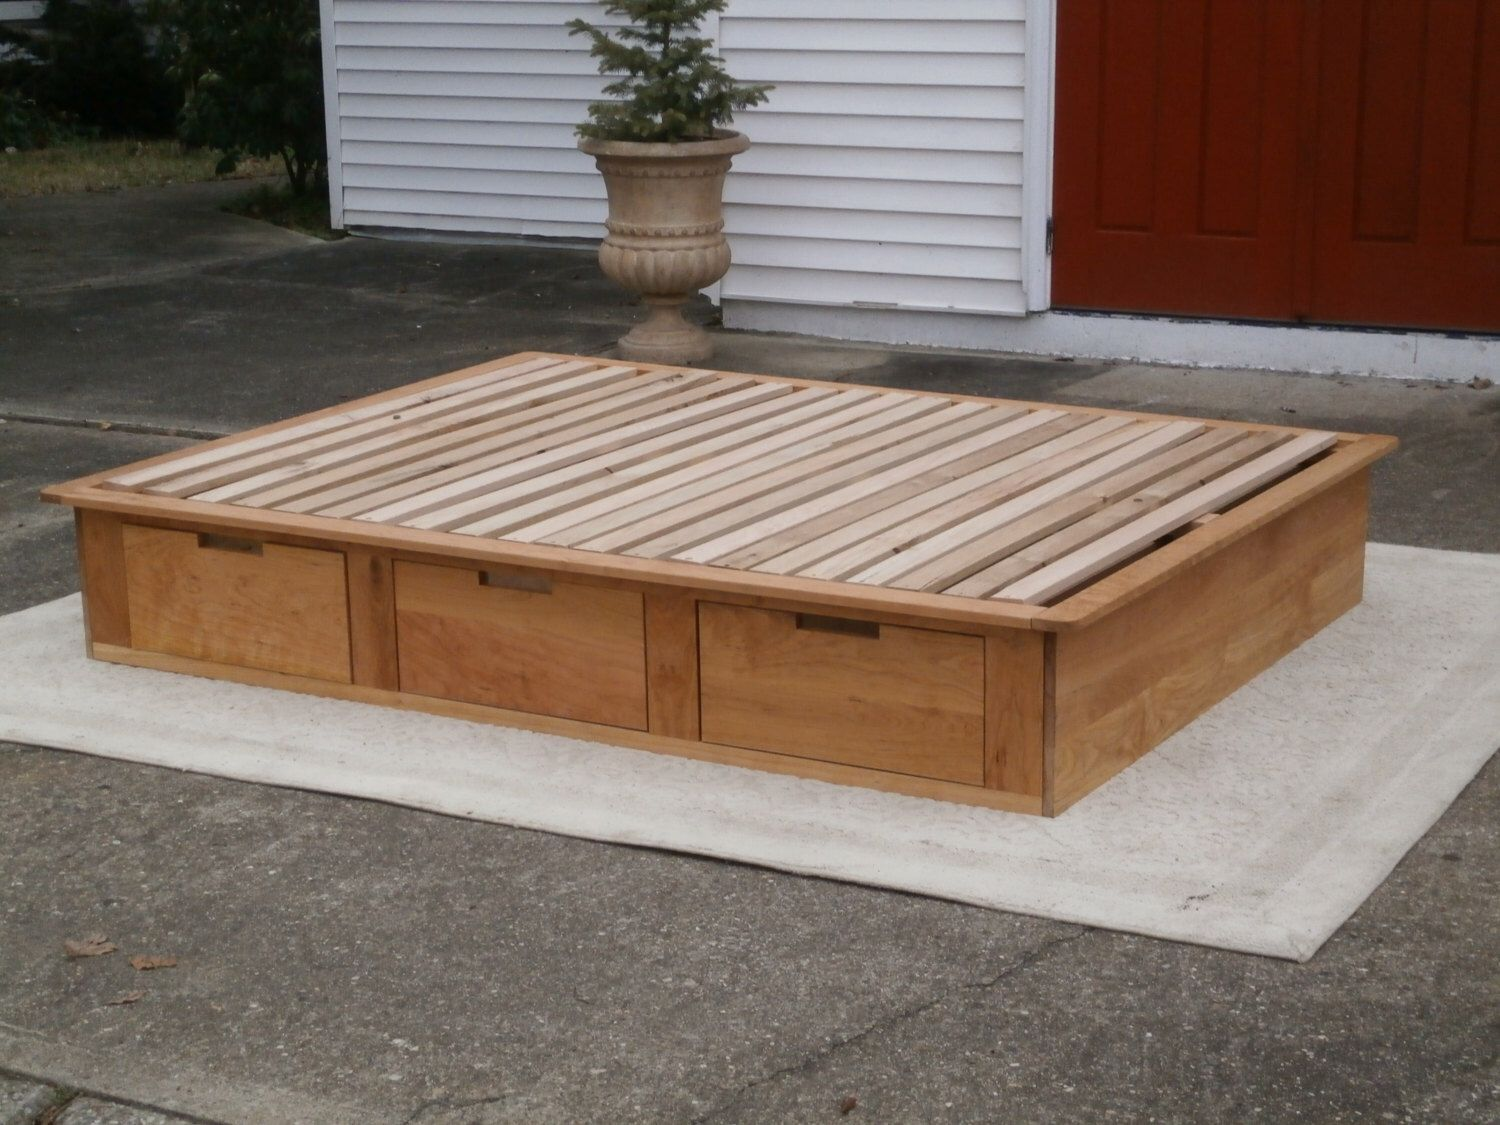 Ndfsn06a Solid Hardwood Low Platform Bed Or Tatami Bed With